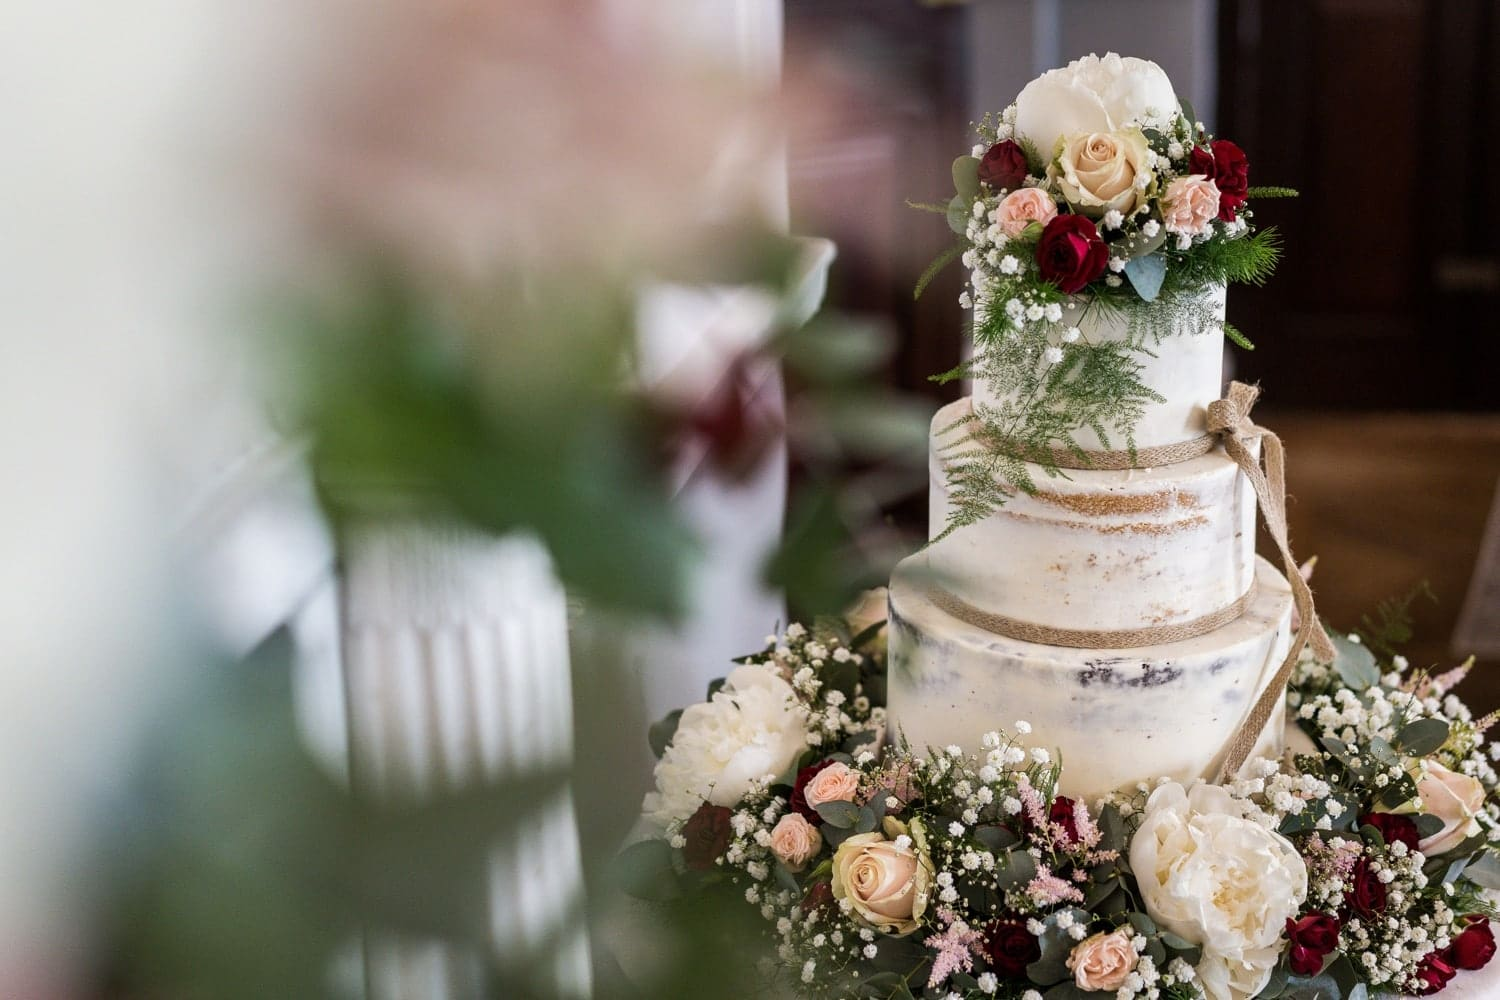 Wedding cake at Llansantffraed Court, Monmouthshire in South Wales